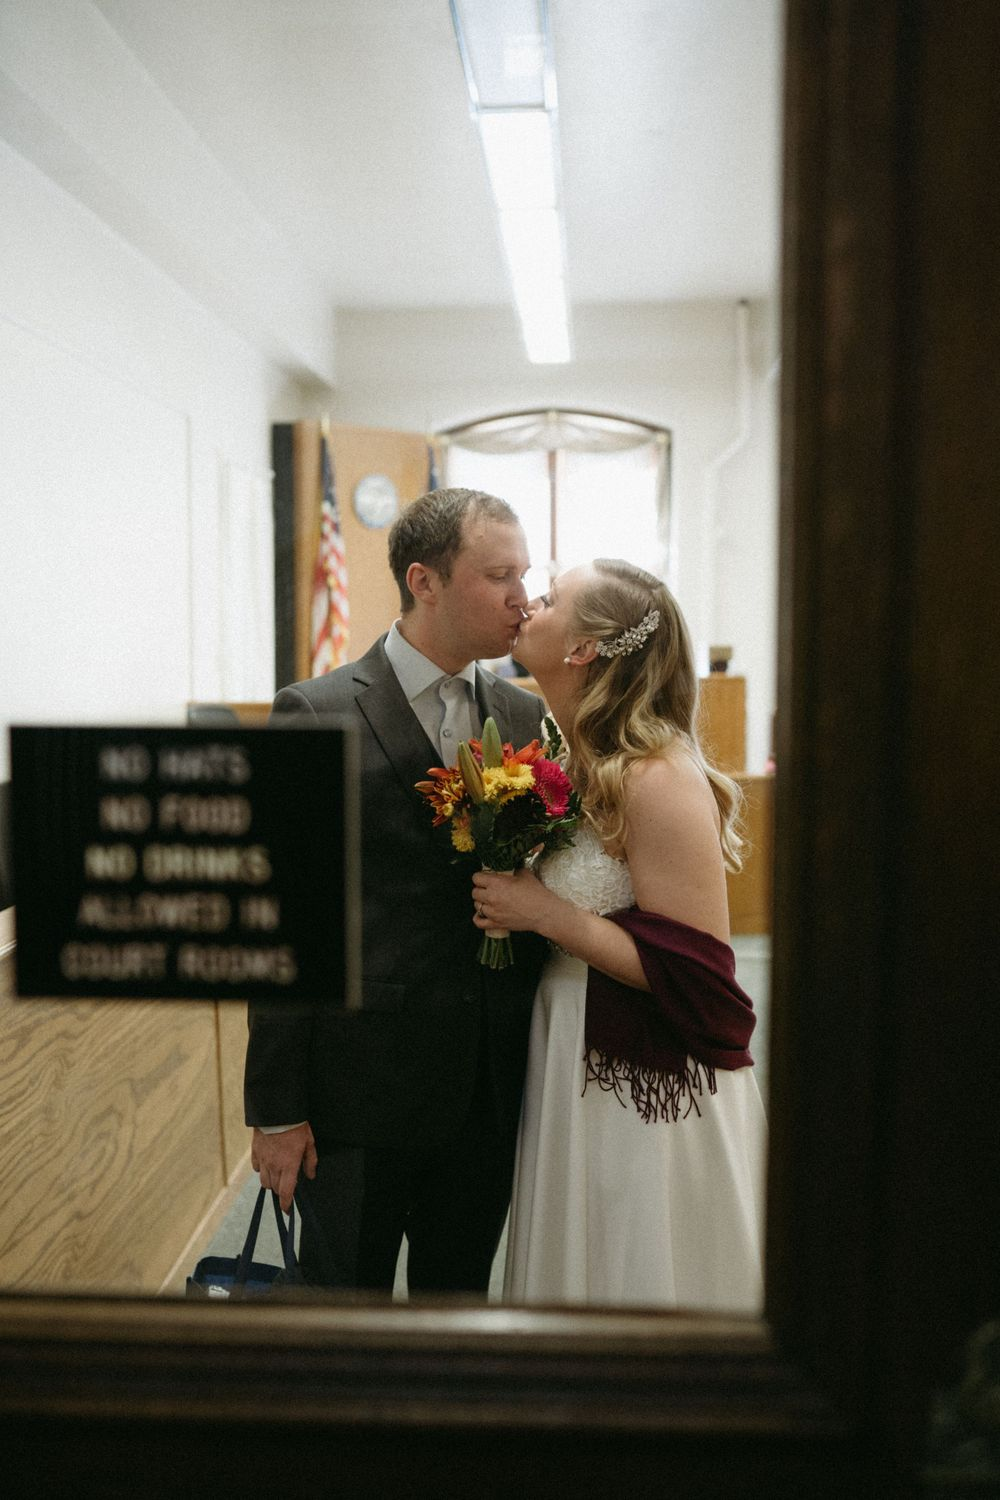 bride-groom-first-kiss-elopement-polk-county-courthouse-desmoines-iowa-raelyn-ramey-photography